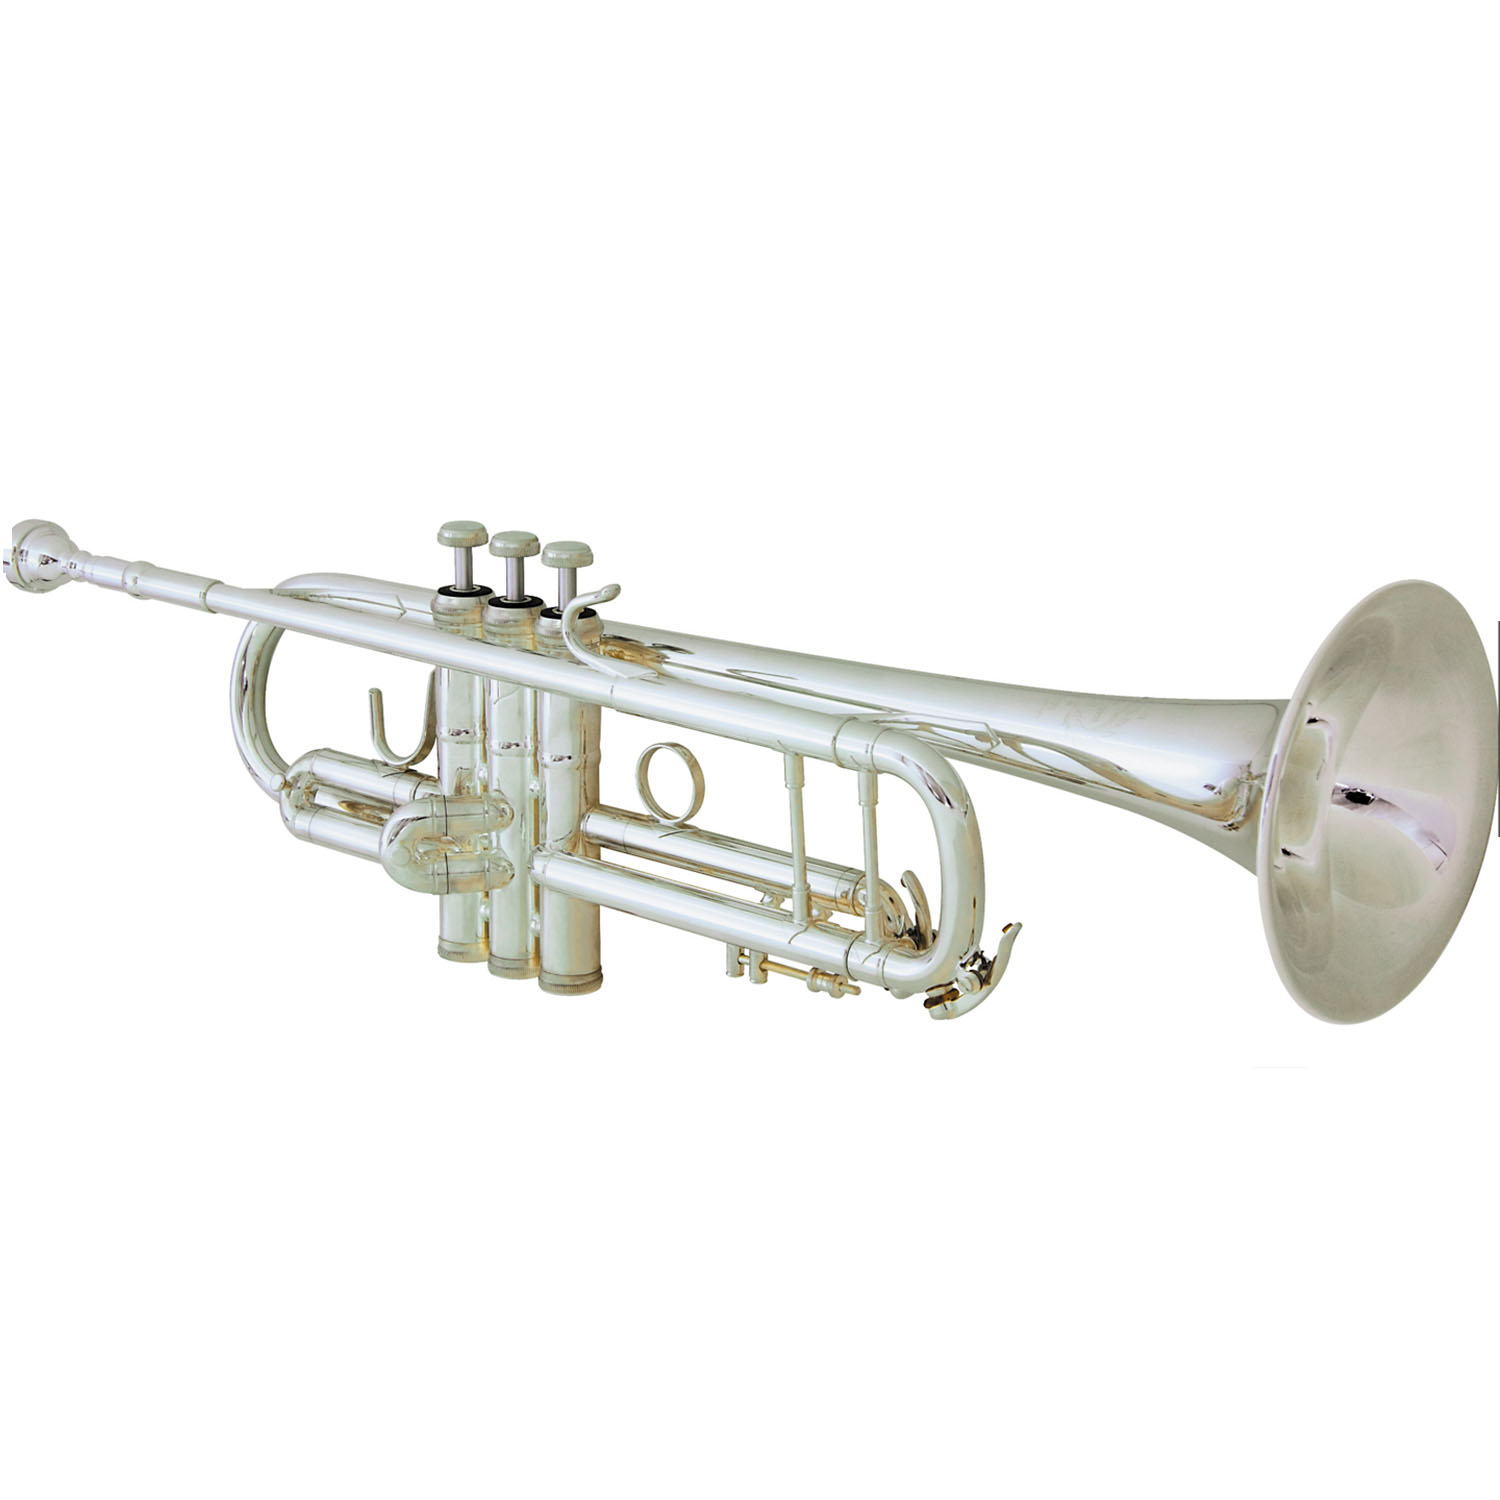 """B&S """"Challenger I"""" Professional Bb Trumpet - Silver Plating - $100.00 Instant Rebate"""